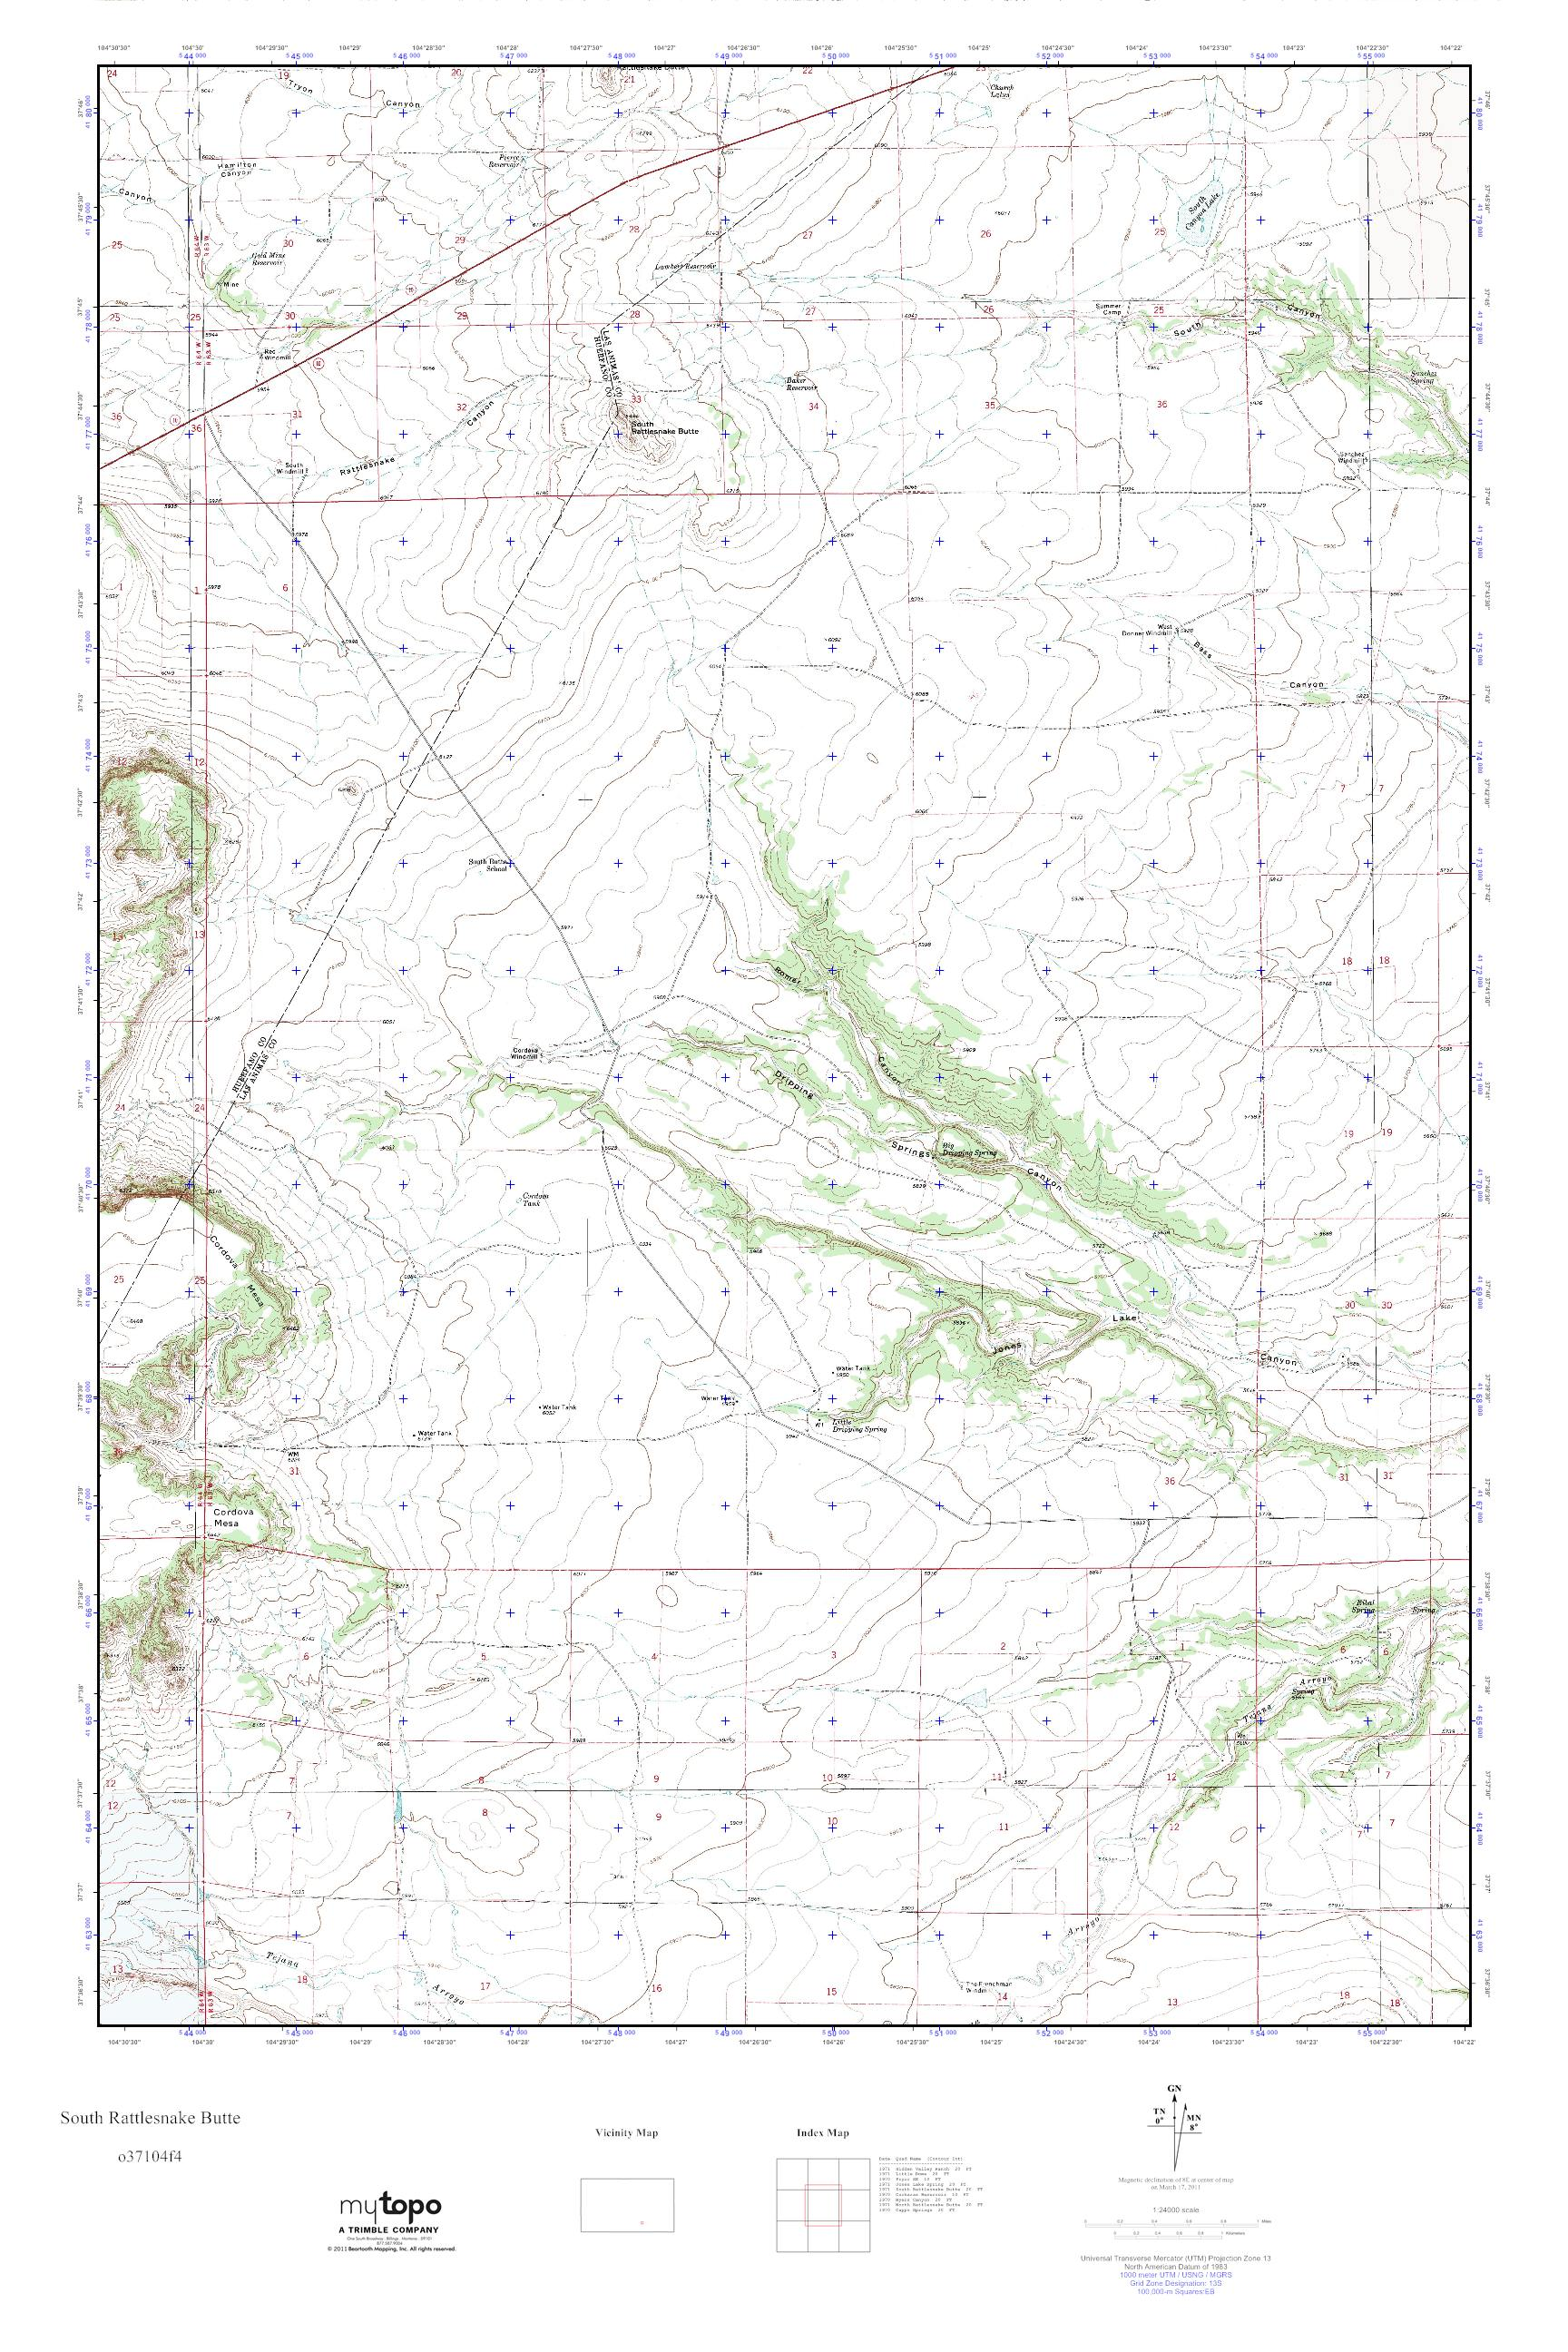 Rattlesnakes In Colorado Map.Mytopo South Rattlesnake Butte Colorado Usgs Quad Topo Map